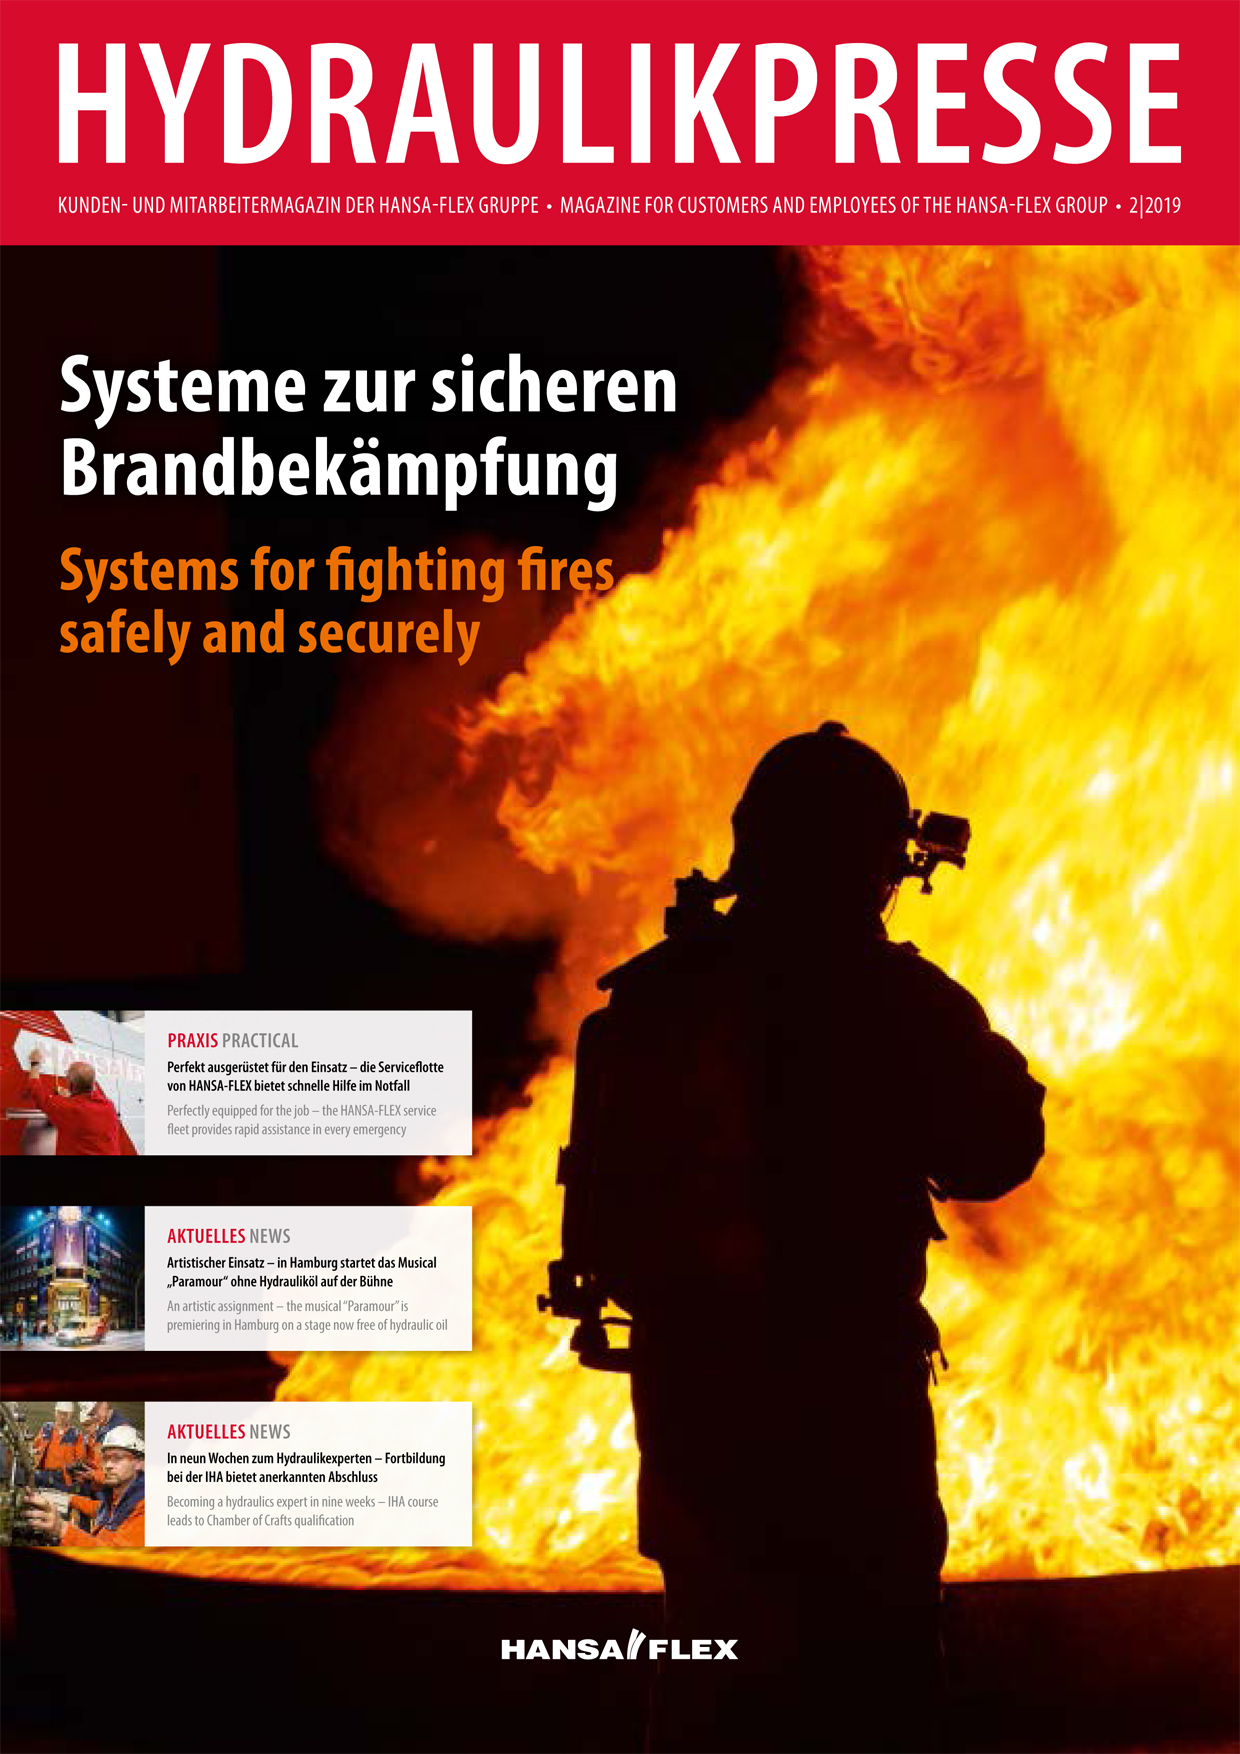 HYDRAULIKPRESSE June 2019 Cover